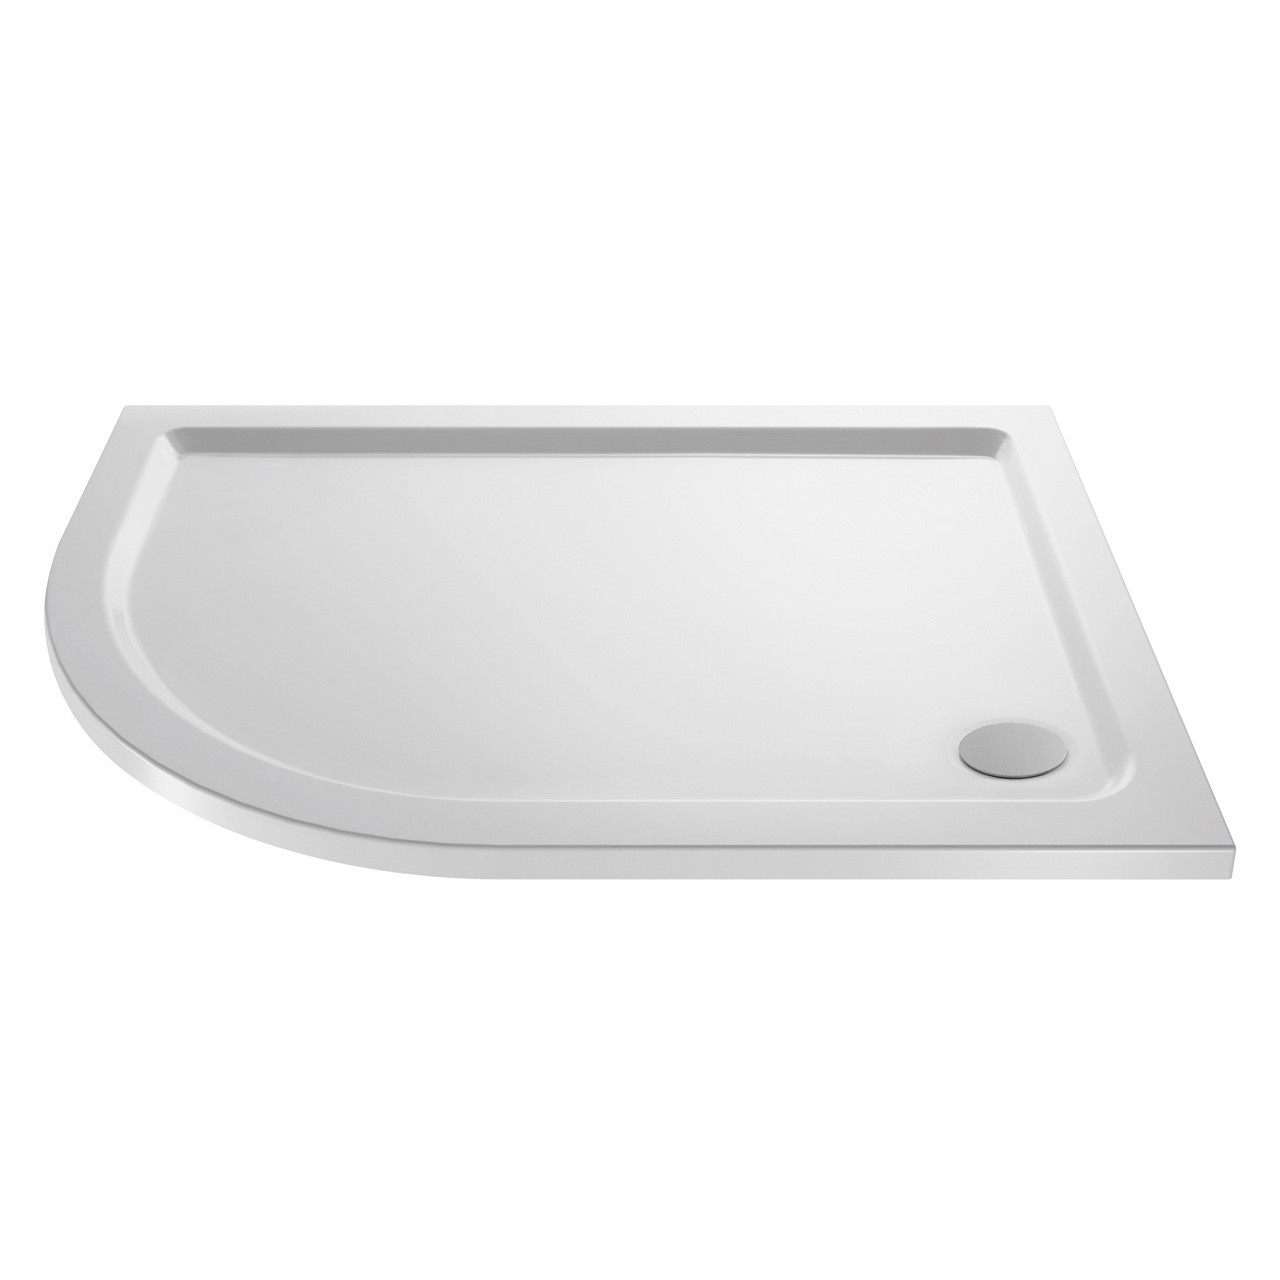 Nuie Pearlstone 1000mm x 800mm Left Hand Offset Quadrant Shower Tray - NTP108